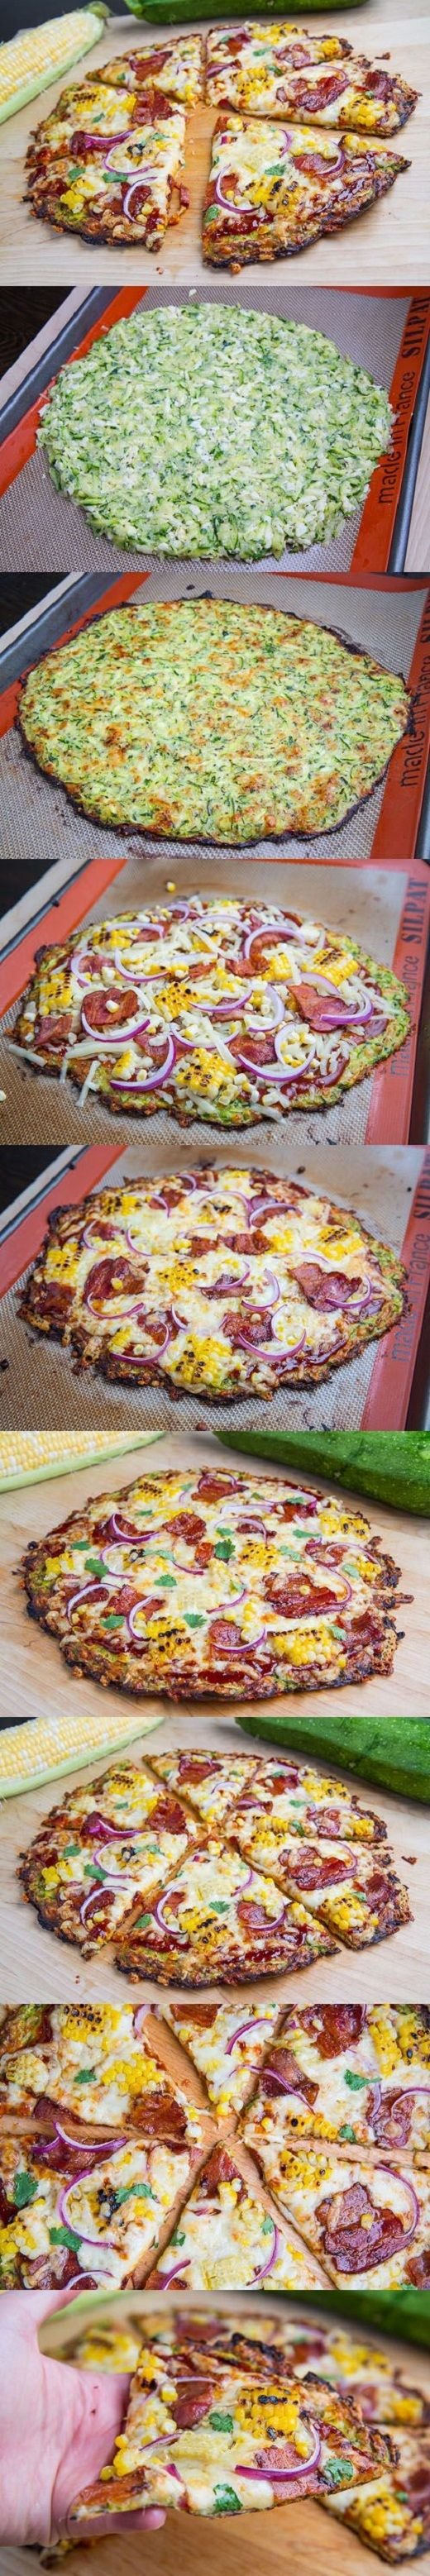 Zucchini Pizza Crust (with Chipotle BBQ Bacon and Grilled Corn Pizza) - Closet Cooking